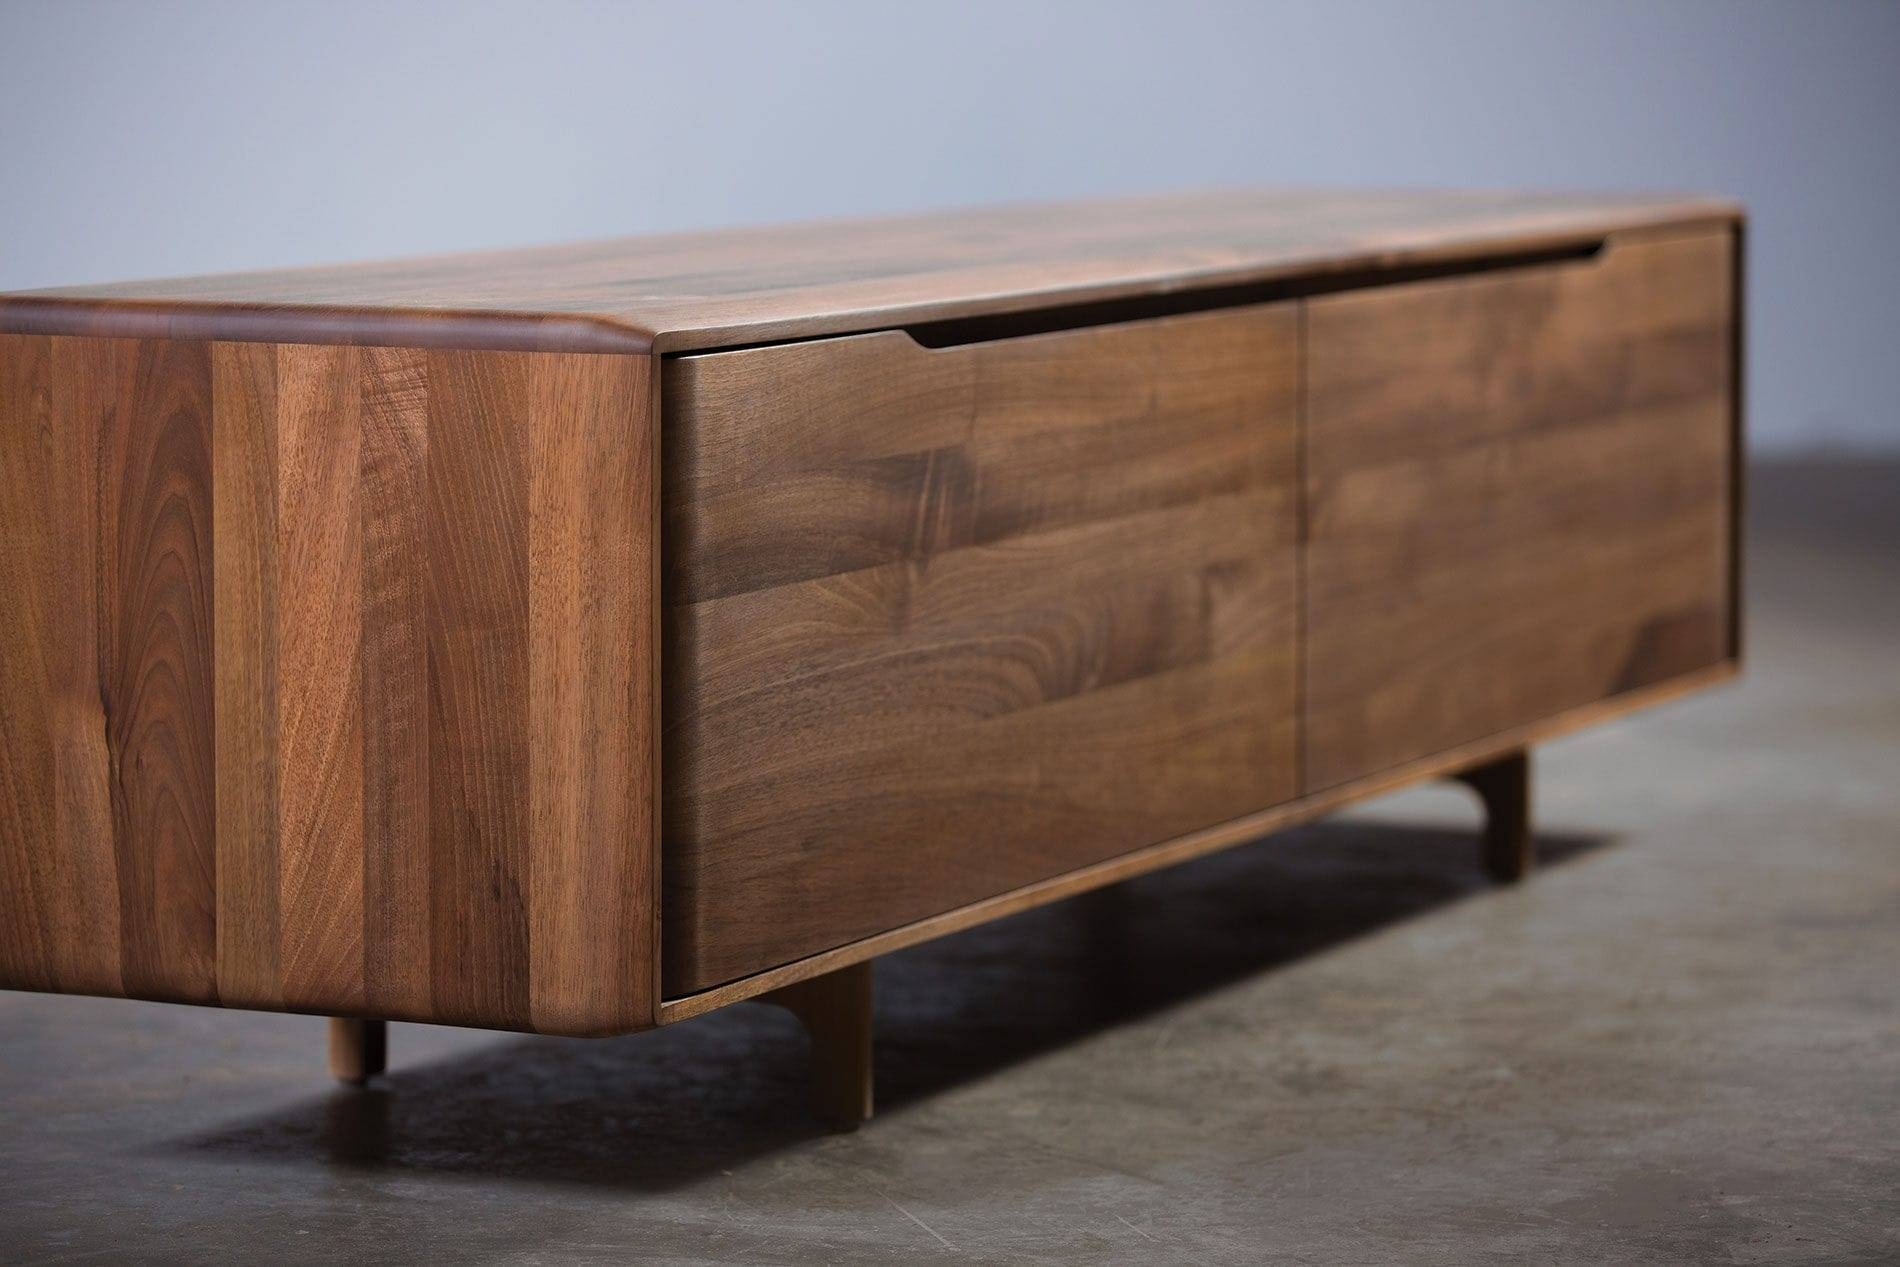 Contemporary Sideboard / Oak / Walnut / Solid Wood – Invito With Regard To Modern Sideboards Furniture (View 11 of 20)